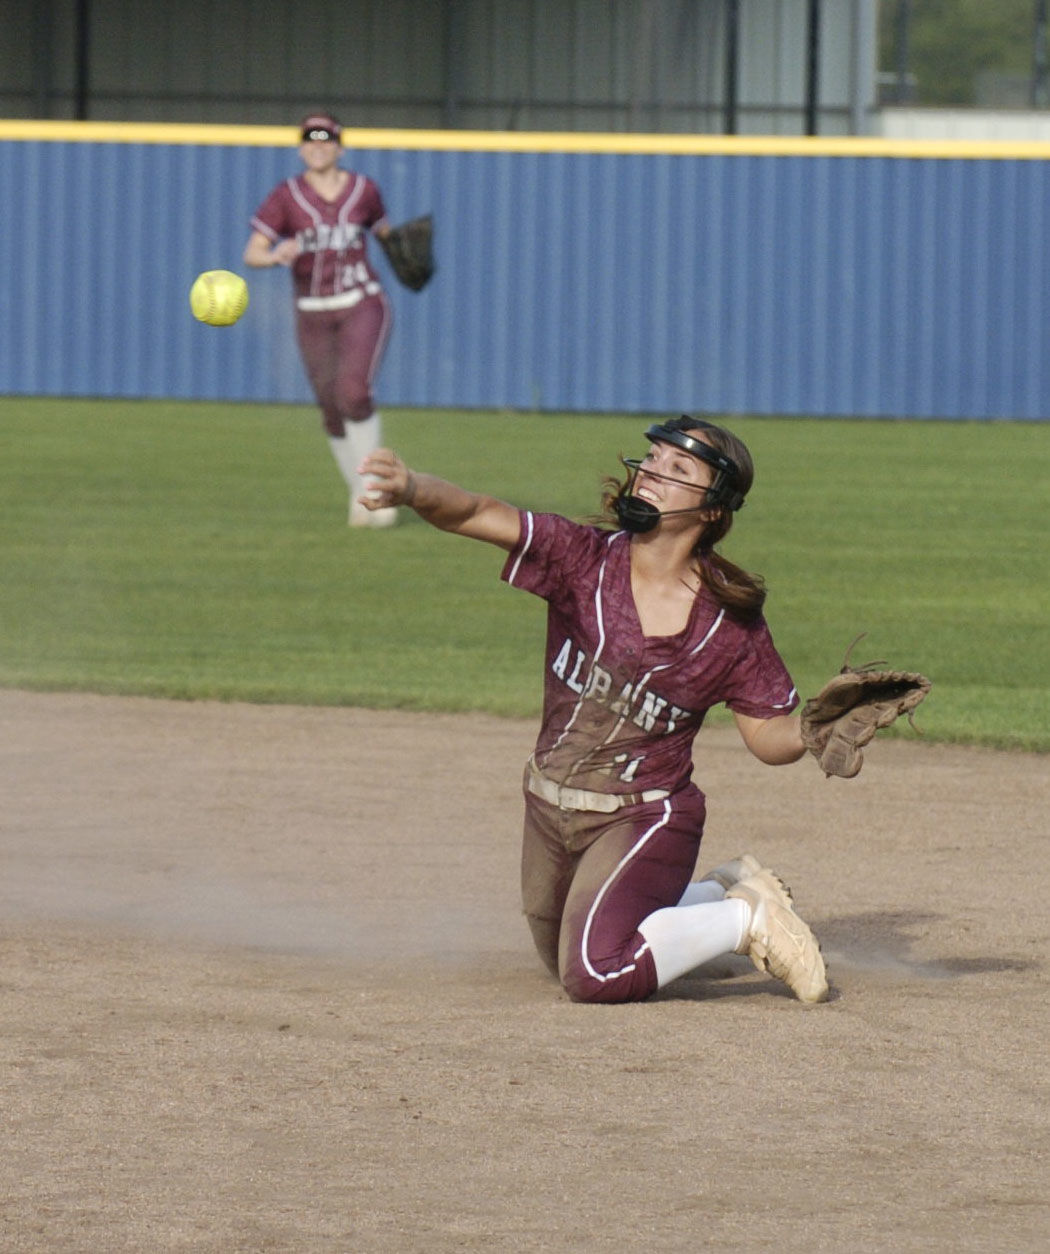 "Albany softball vs. Erath"" Rayanne Ridgell"